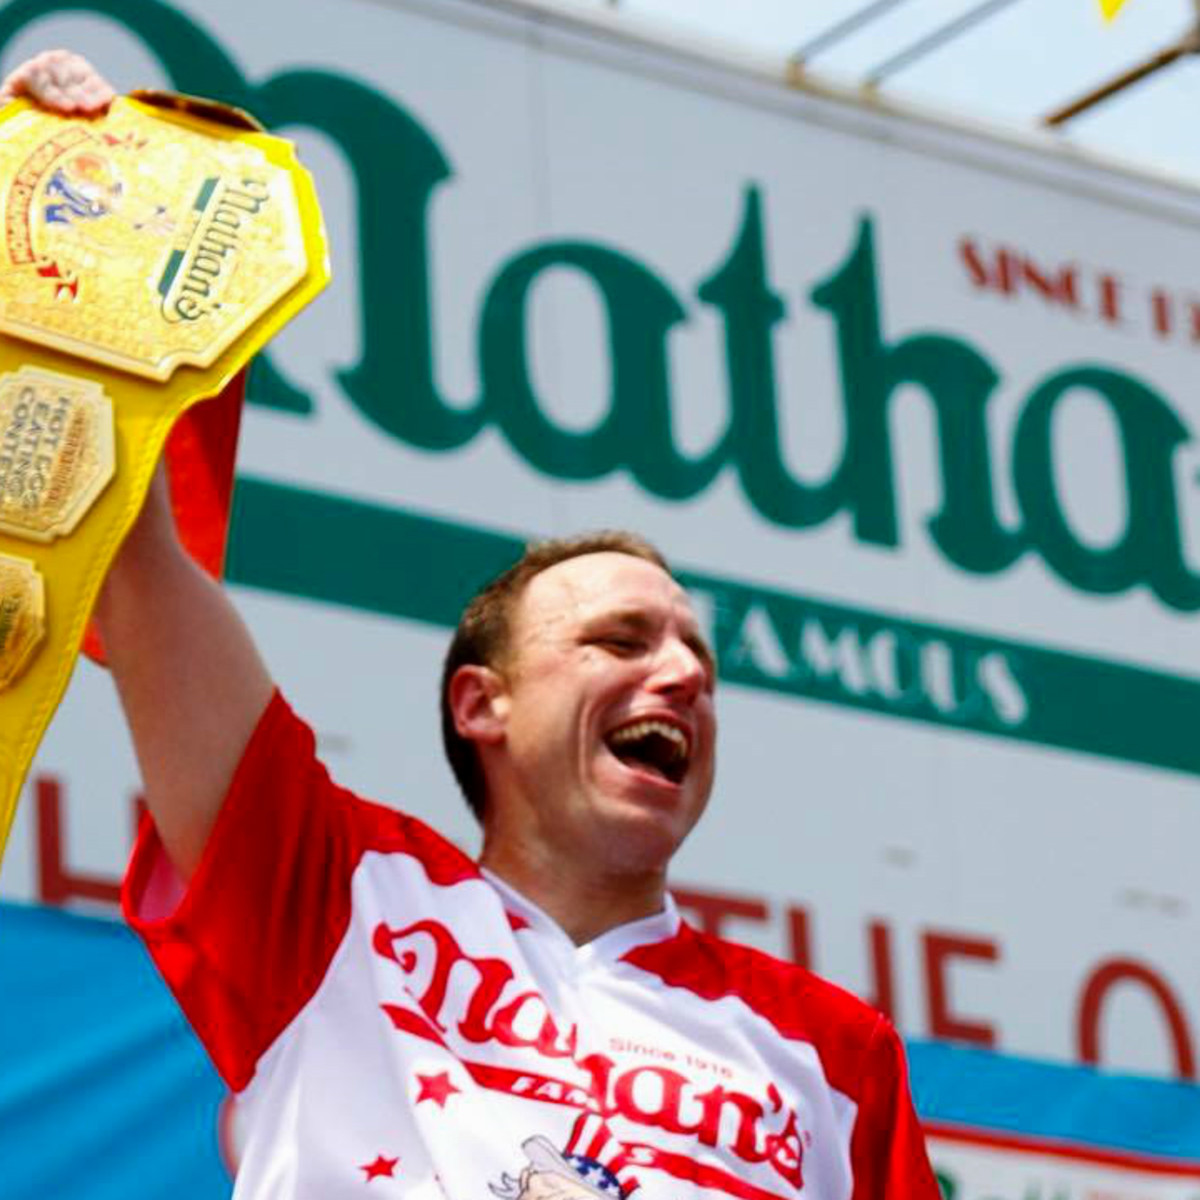 Joey Chestnut world champion mustard belt